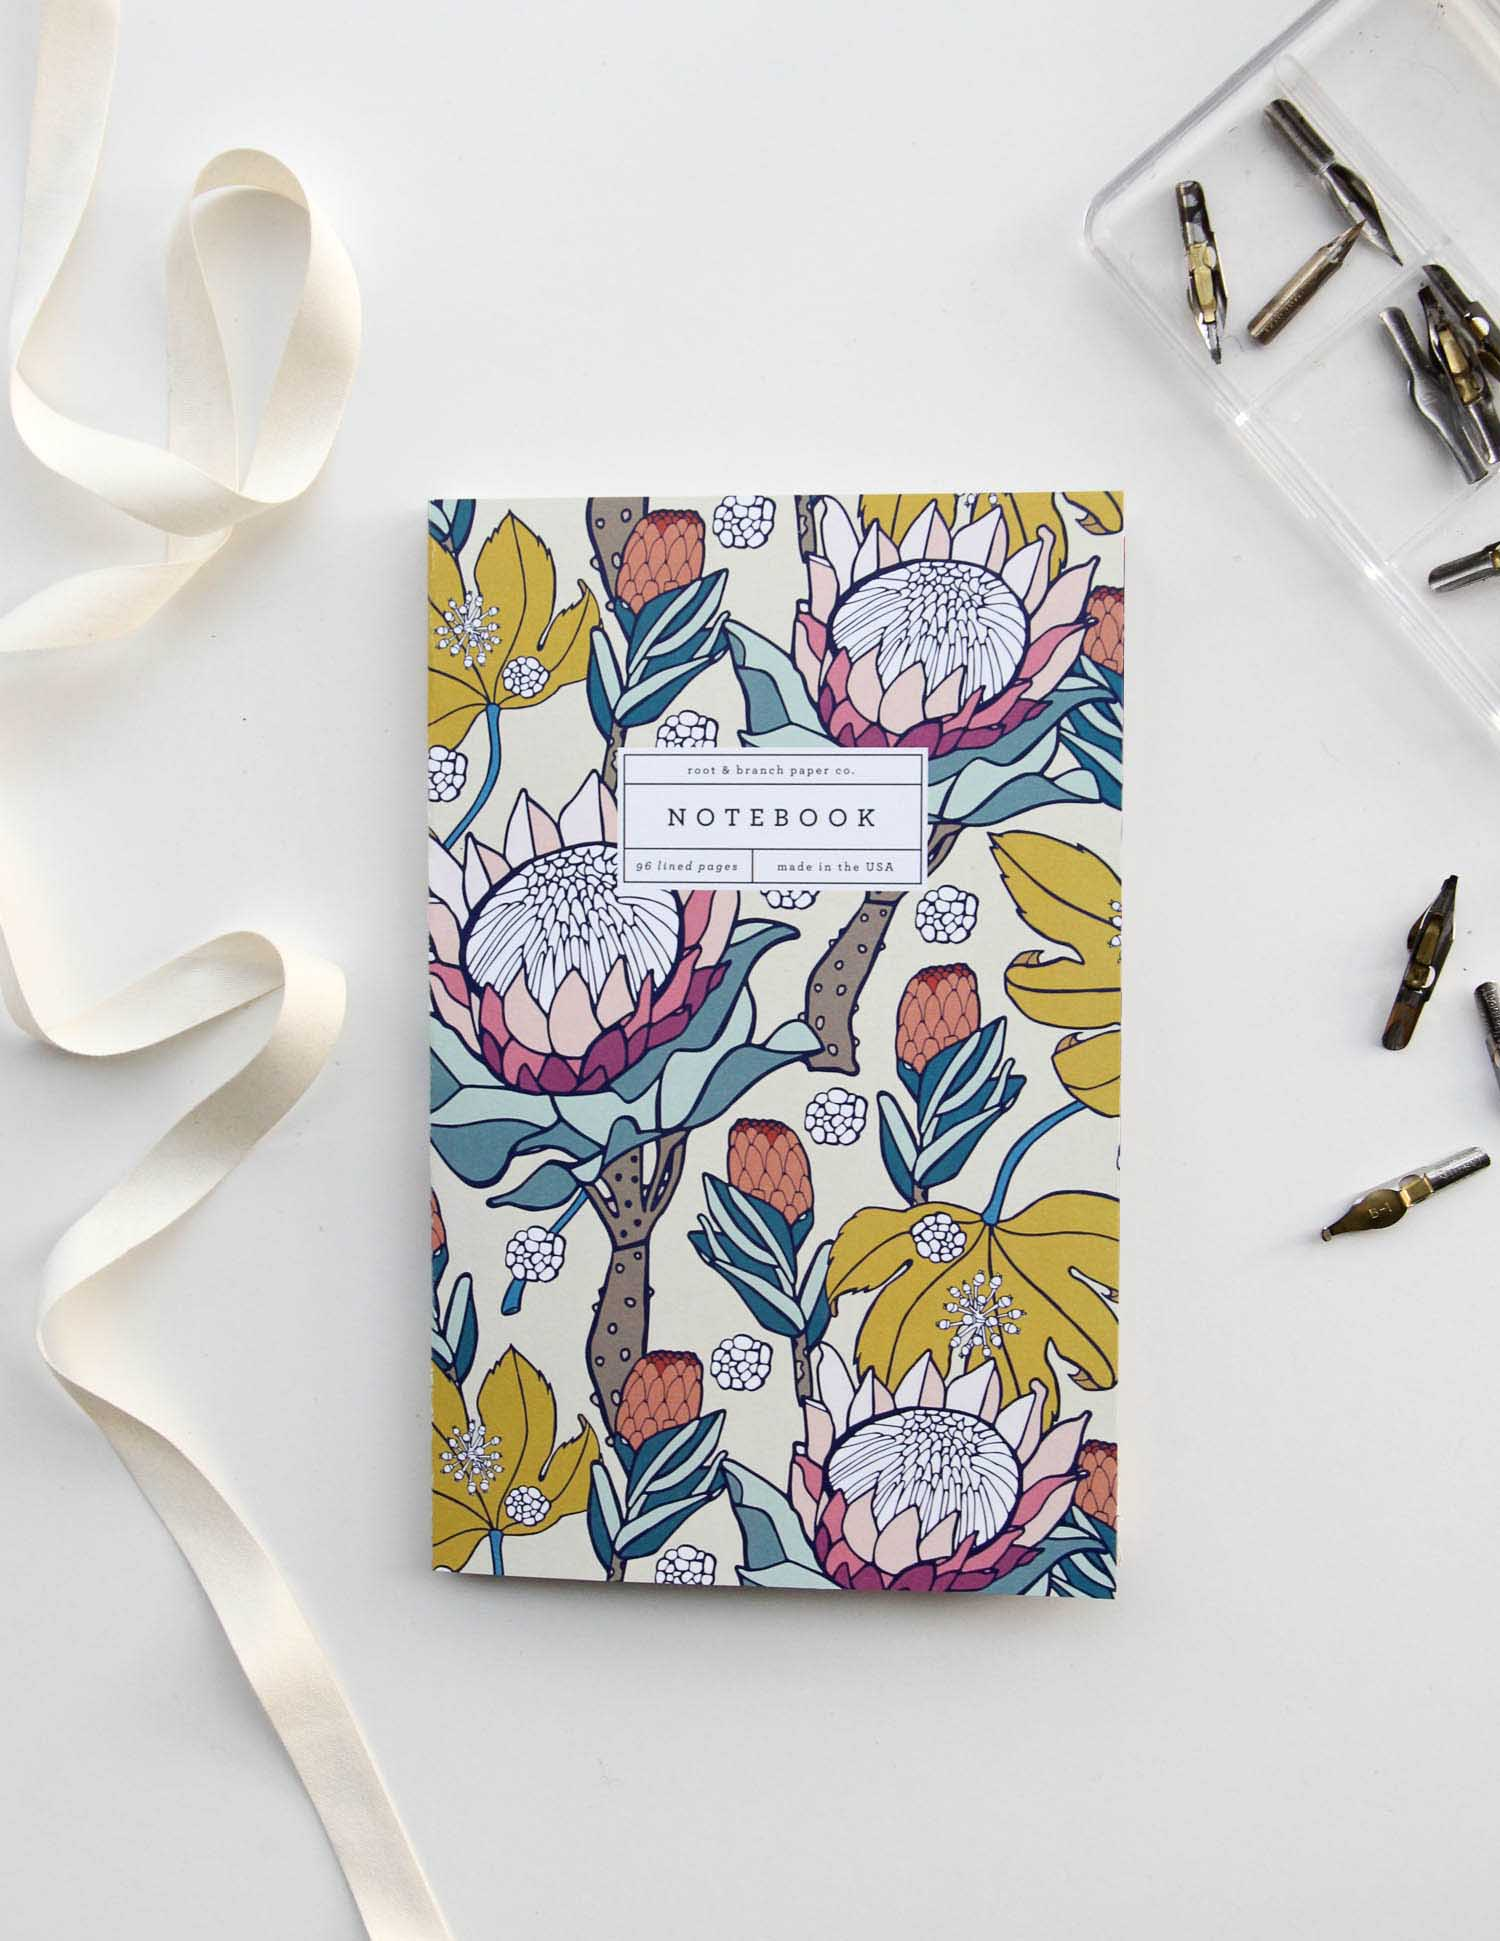 The Pink Ice Protea notebook, our best-selling notebook style